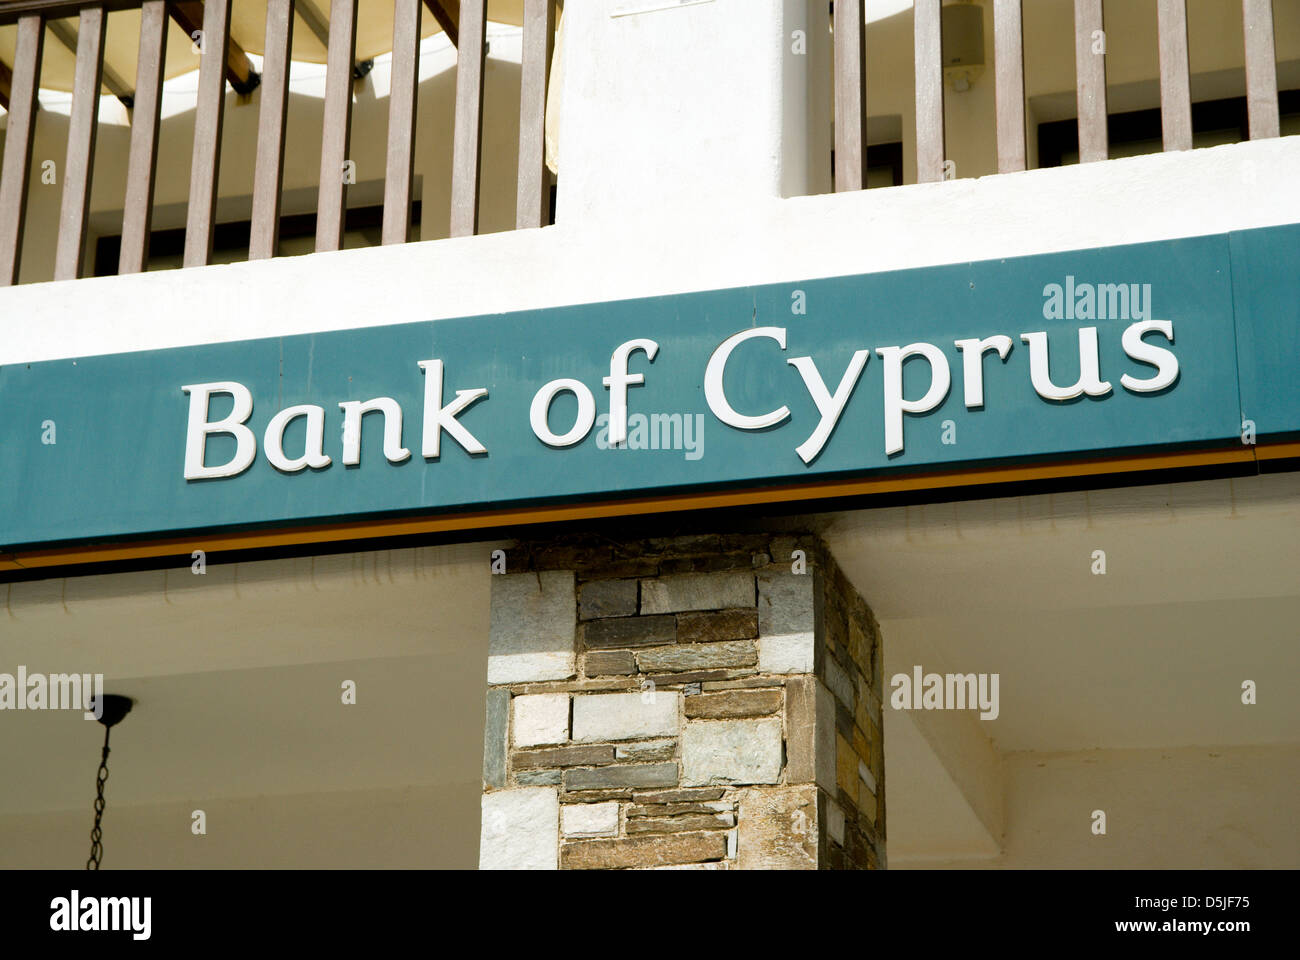 bank of cyprus paphos cyprus - Stock Image